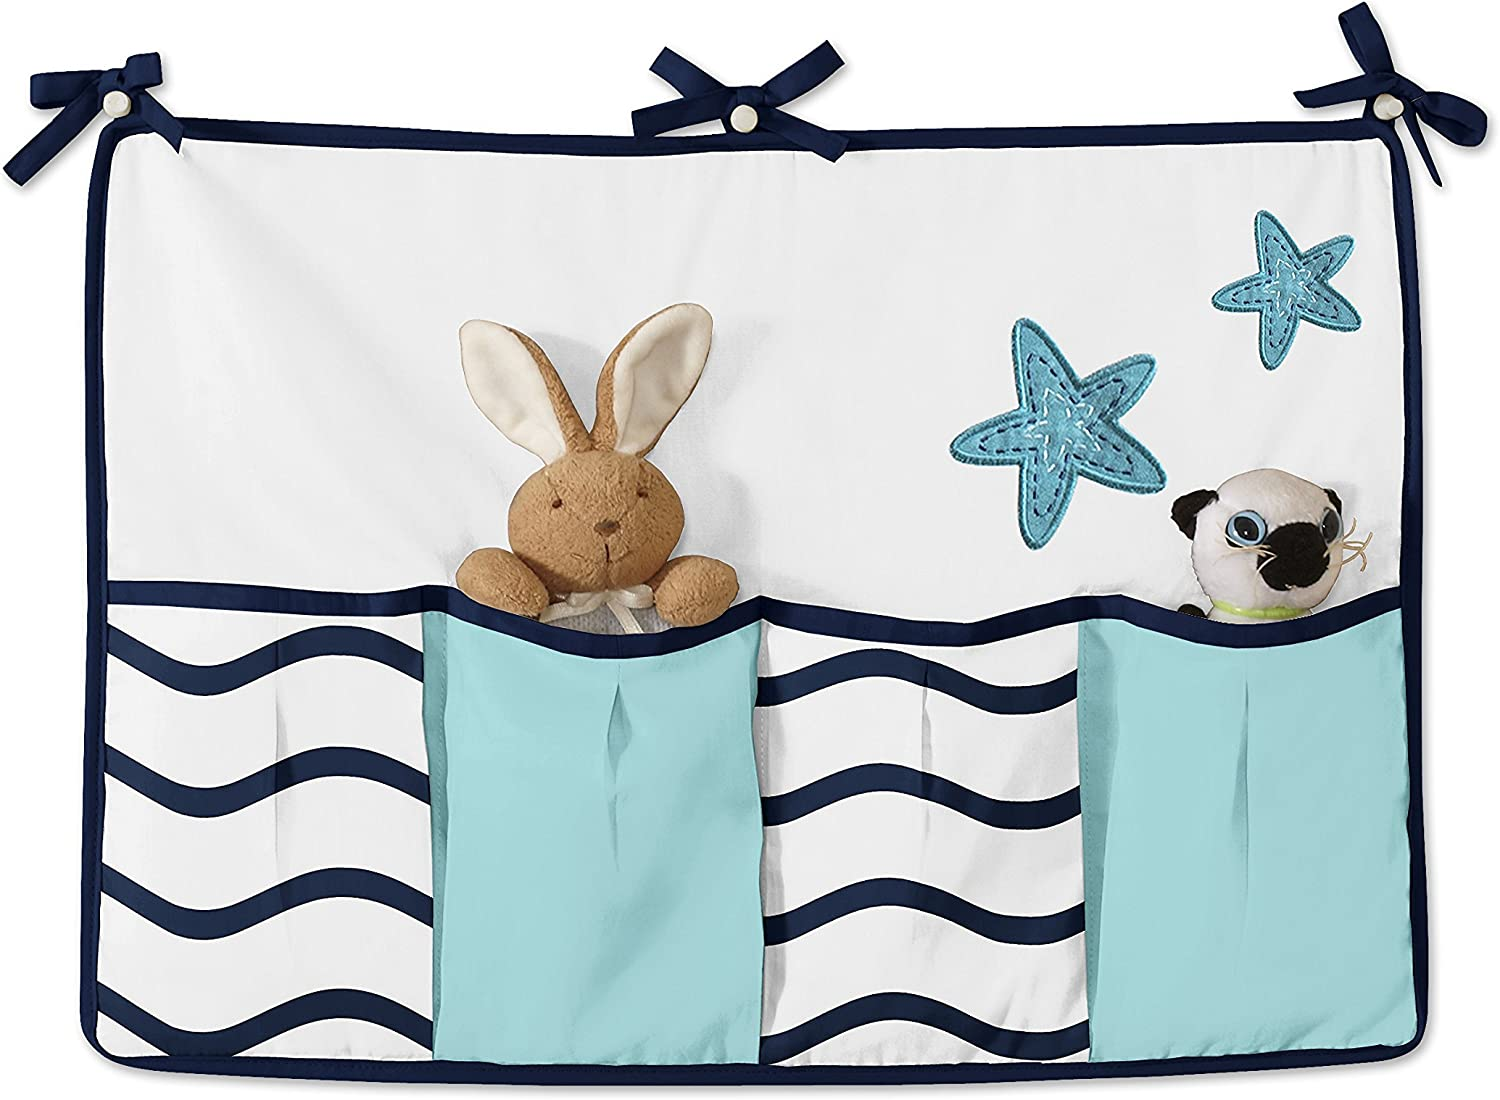 Turquoise Navy Blue and White Whale Nautical Ocean Baby Boys or Girls 9 Piece Crib Bedding Set With Bumper